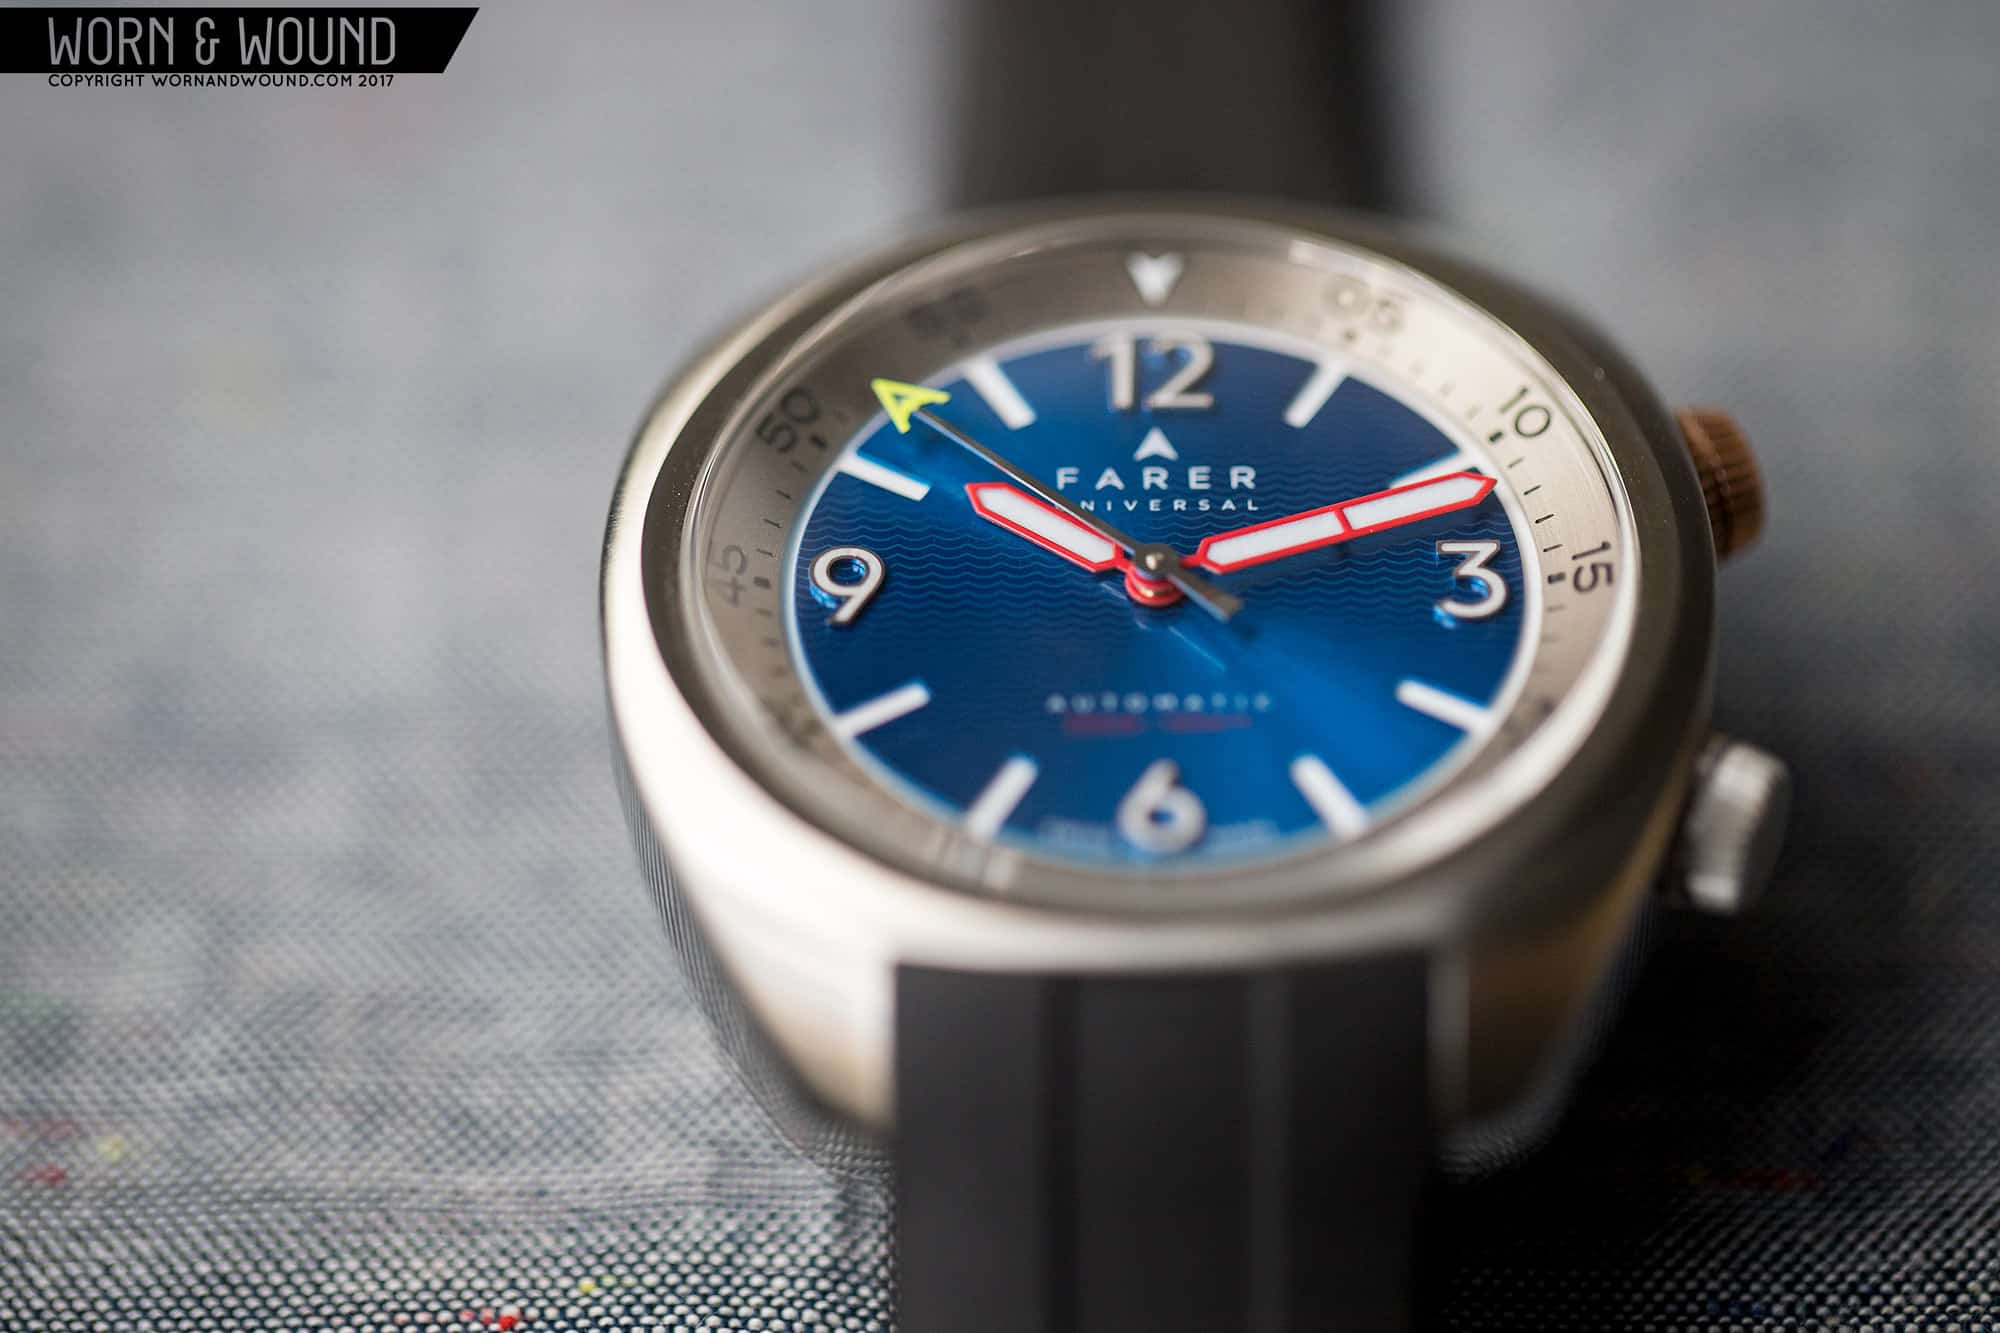 Farer Aqua Compressor Hecla Review